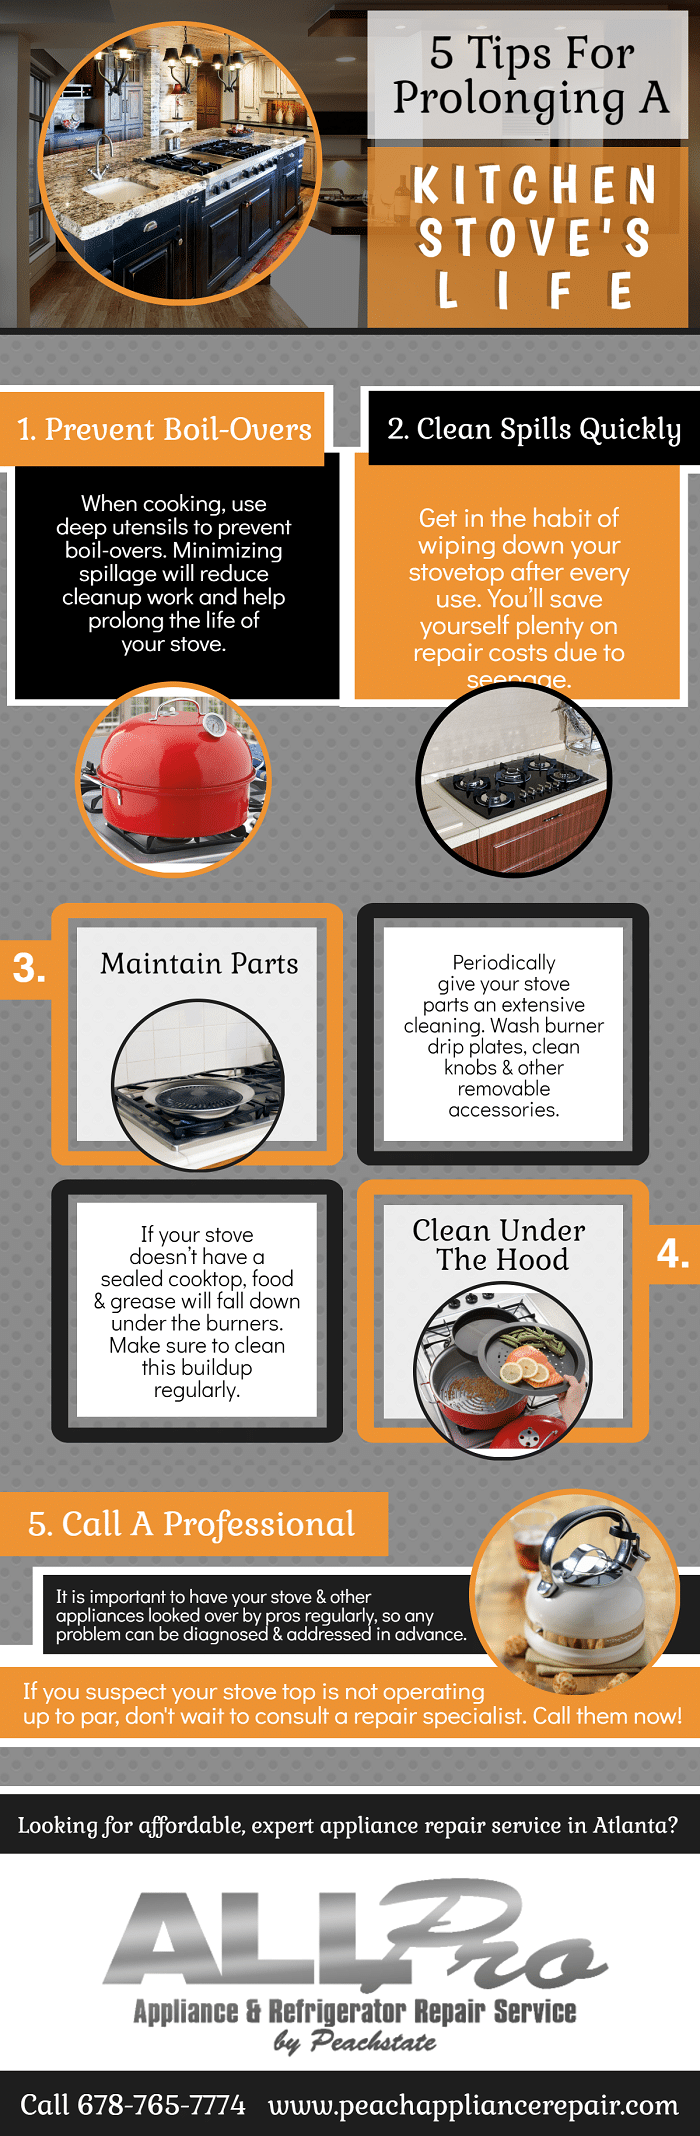 5 Tips For Prolonging a Kitchen Stove's Life infographic